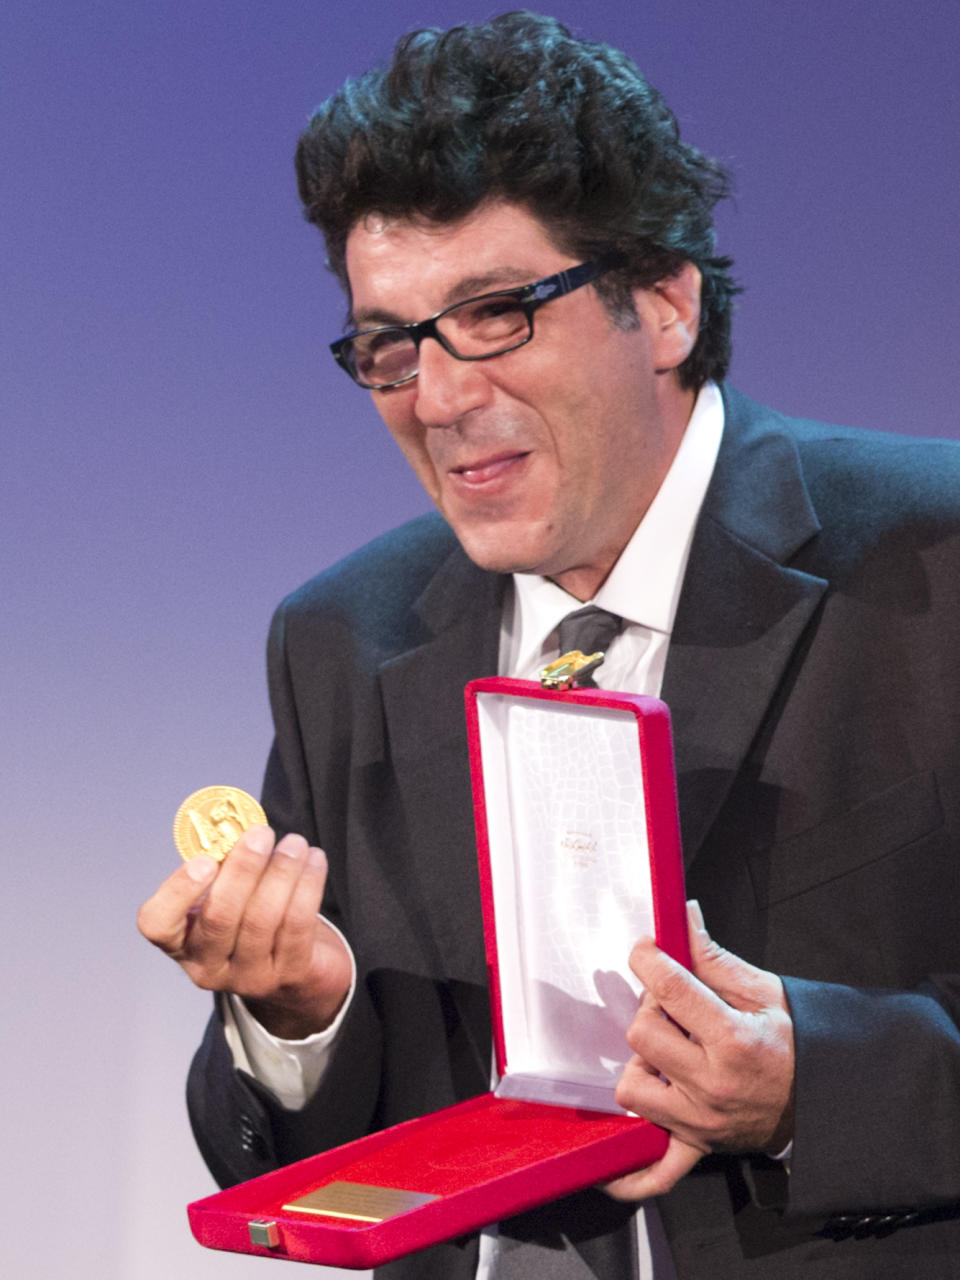 Director Daniele Cipri' shows his prize for Best Photography for his movie 'E' Stato Il Figlio' at the 69th edition of the Venice Film Festival in Venice, Italy, Saturday, Sept. 8, 2012. (AP Photo/Domenico Stinellis)